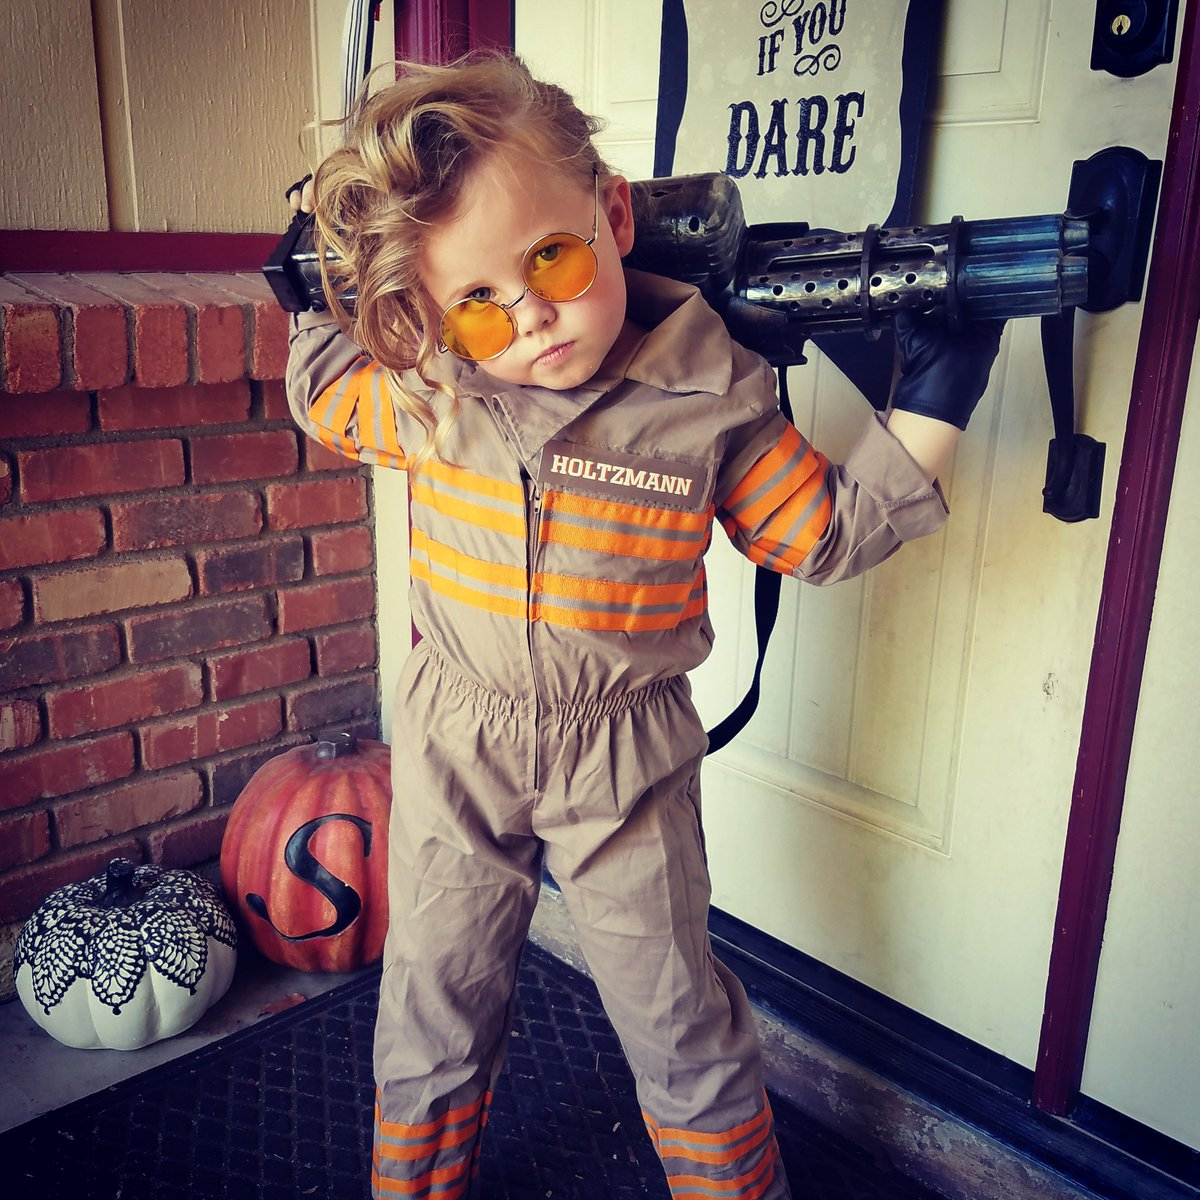 This made my day. RT @LindsayWSherman: @paulfeig tiny Holtzmann is pretty excited to rock her favorite Ghostbuster https://t.co/baImur06XT